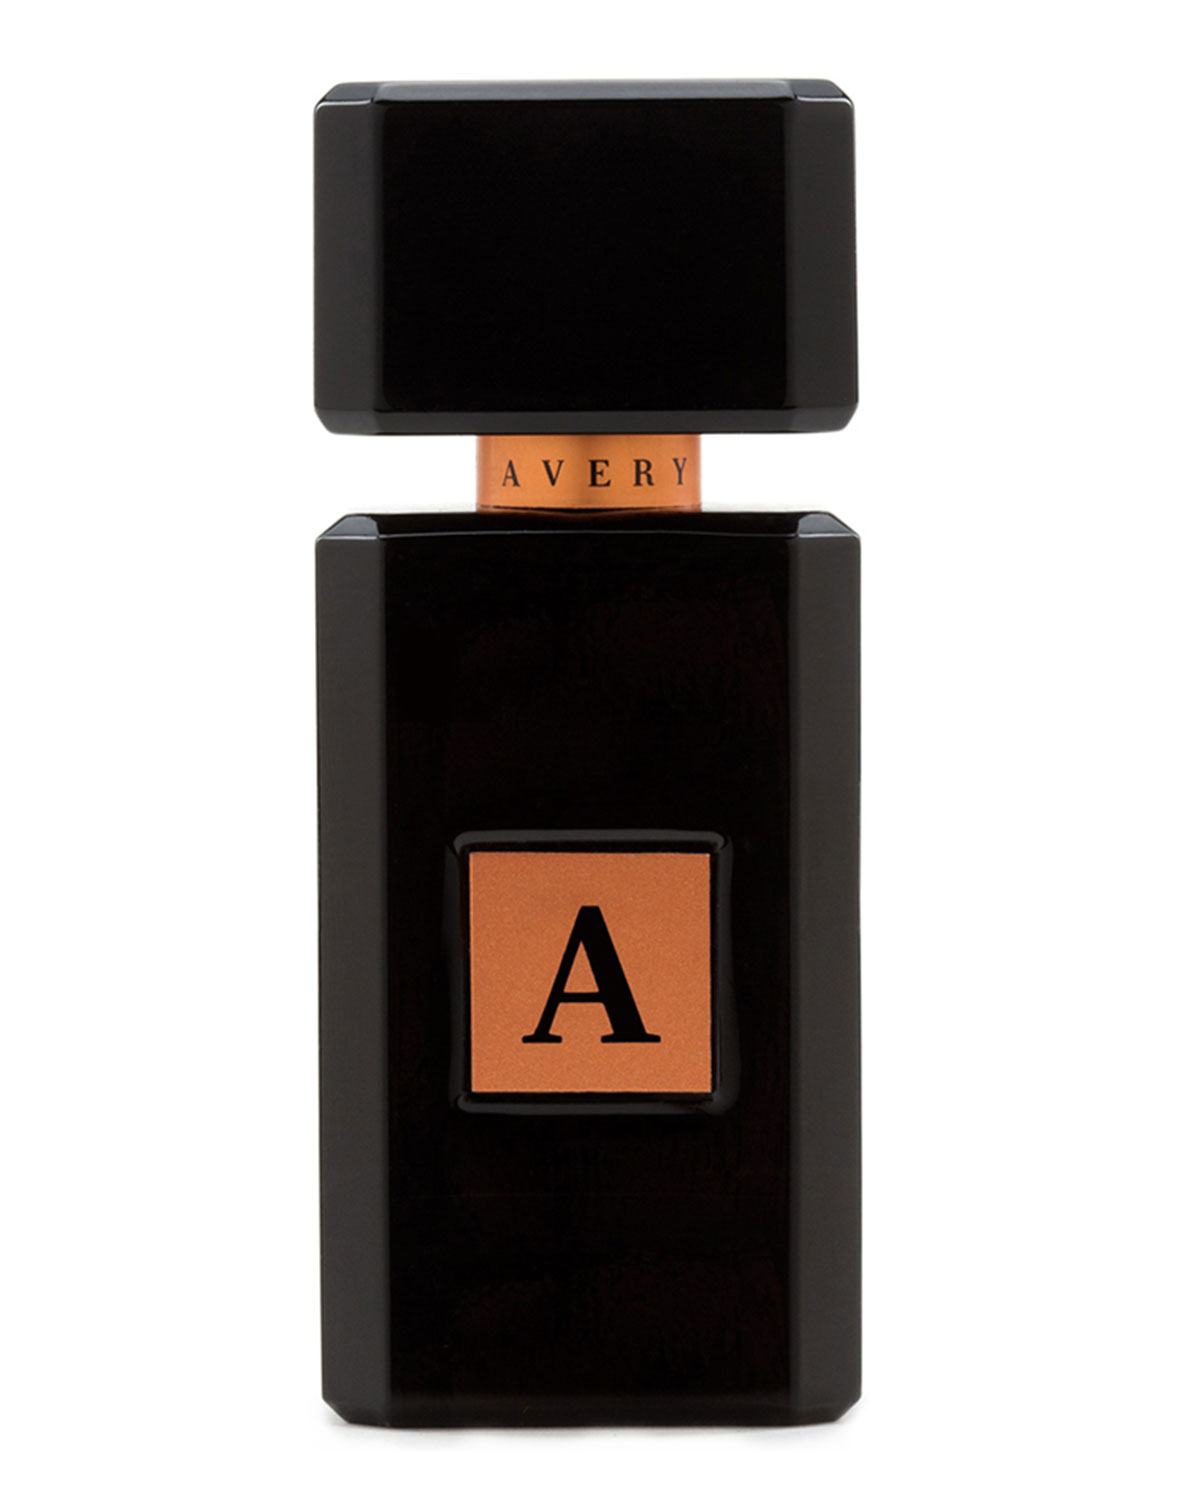 """Avery Perfumes """"A"""" Avery Nektar Spray, 1.0 oz./ 30 mL DetailsA as Adorable. A soft and velvety fragrance. Slightly citric from the presence of lemon and lime, comforting from the incense and black pepper, and ending with a base of white musk and vanilla. 30 mL/ 1.0 fl. oz. Designer About Avery Perfumes: The collection of perfumes has been devised by Celso Fadelli, The President and Fragrance Curator of Intertrade Group, and created specifically for niche perfumery enthusiasts, following five d."""